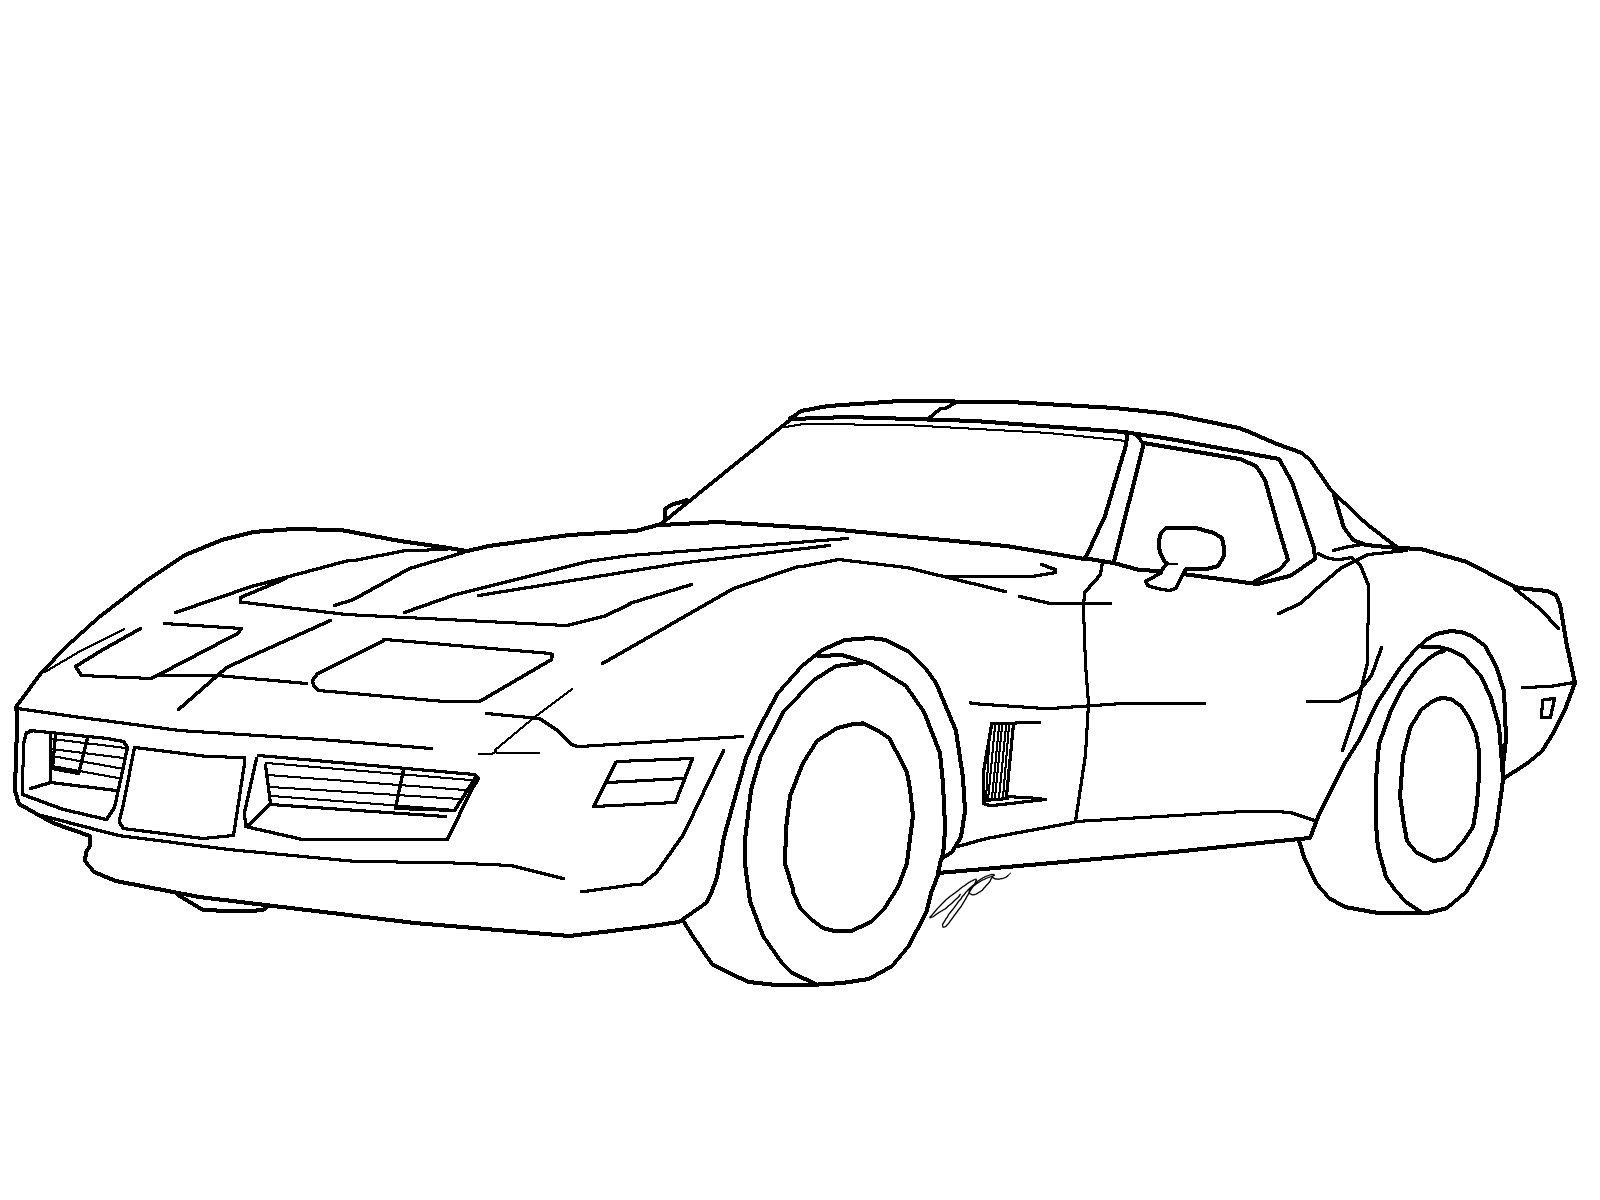 Corvette Lineart 1 By Jaslo On Deviantart